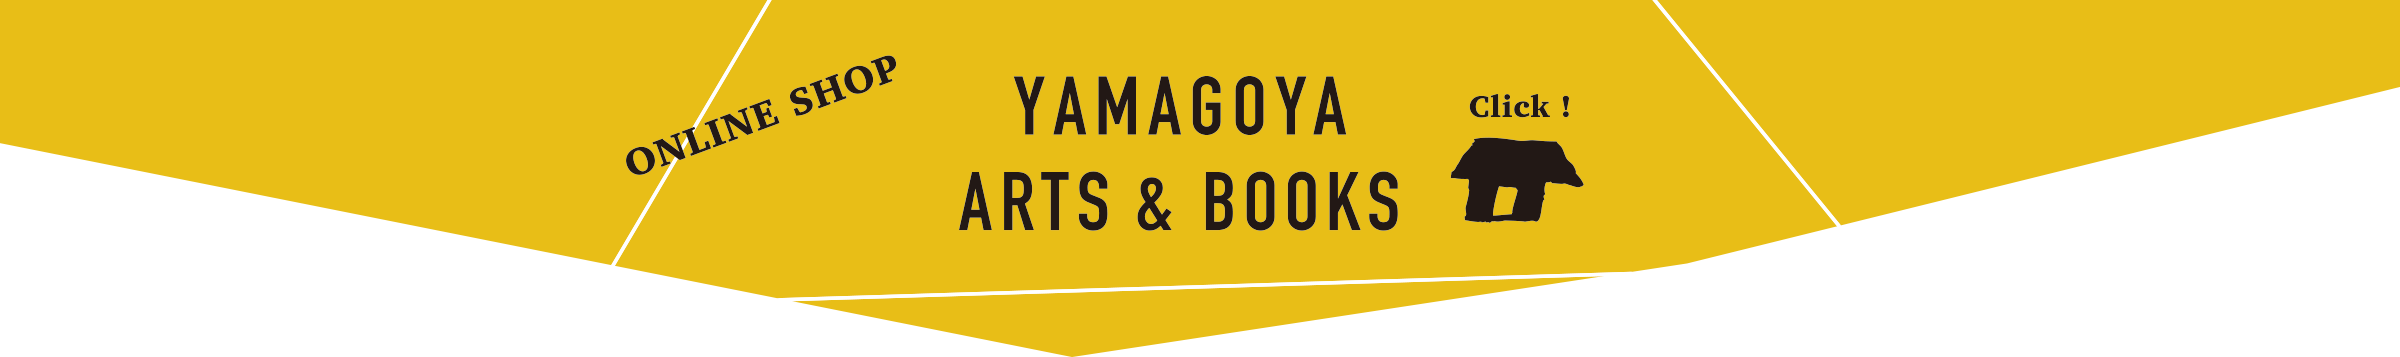 YAMAGOYA ARTS & BOOKS ONLINE SHOP